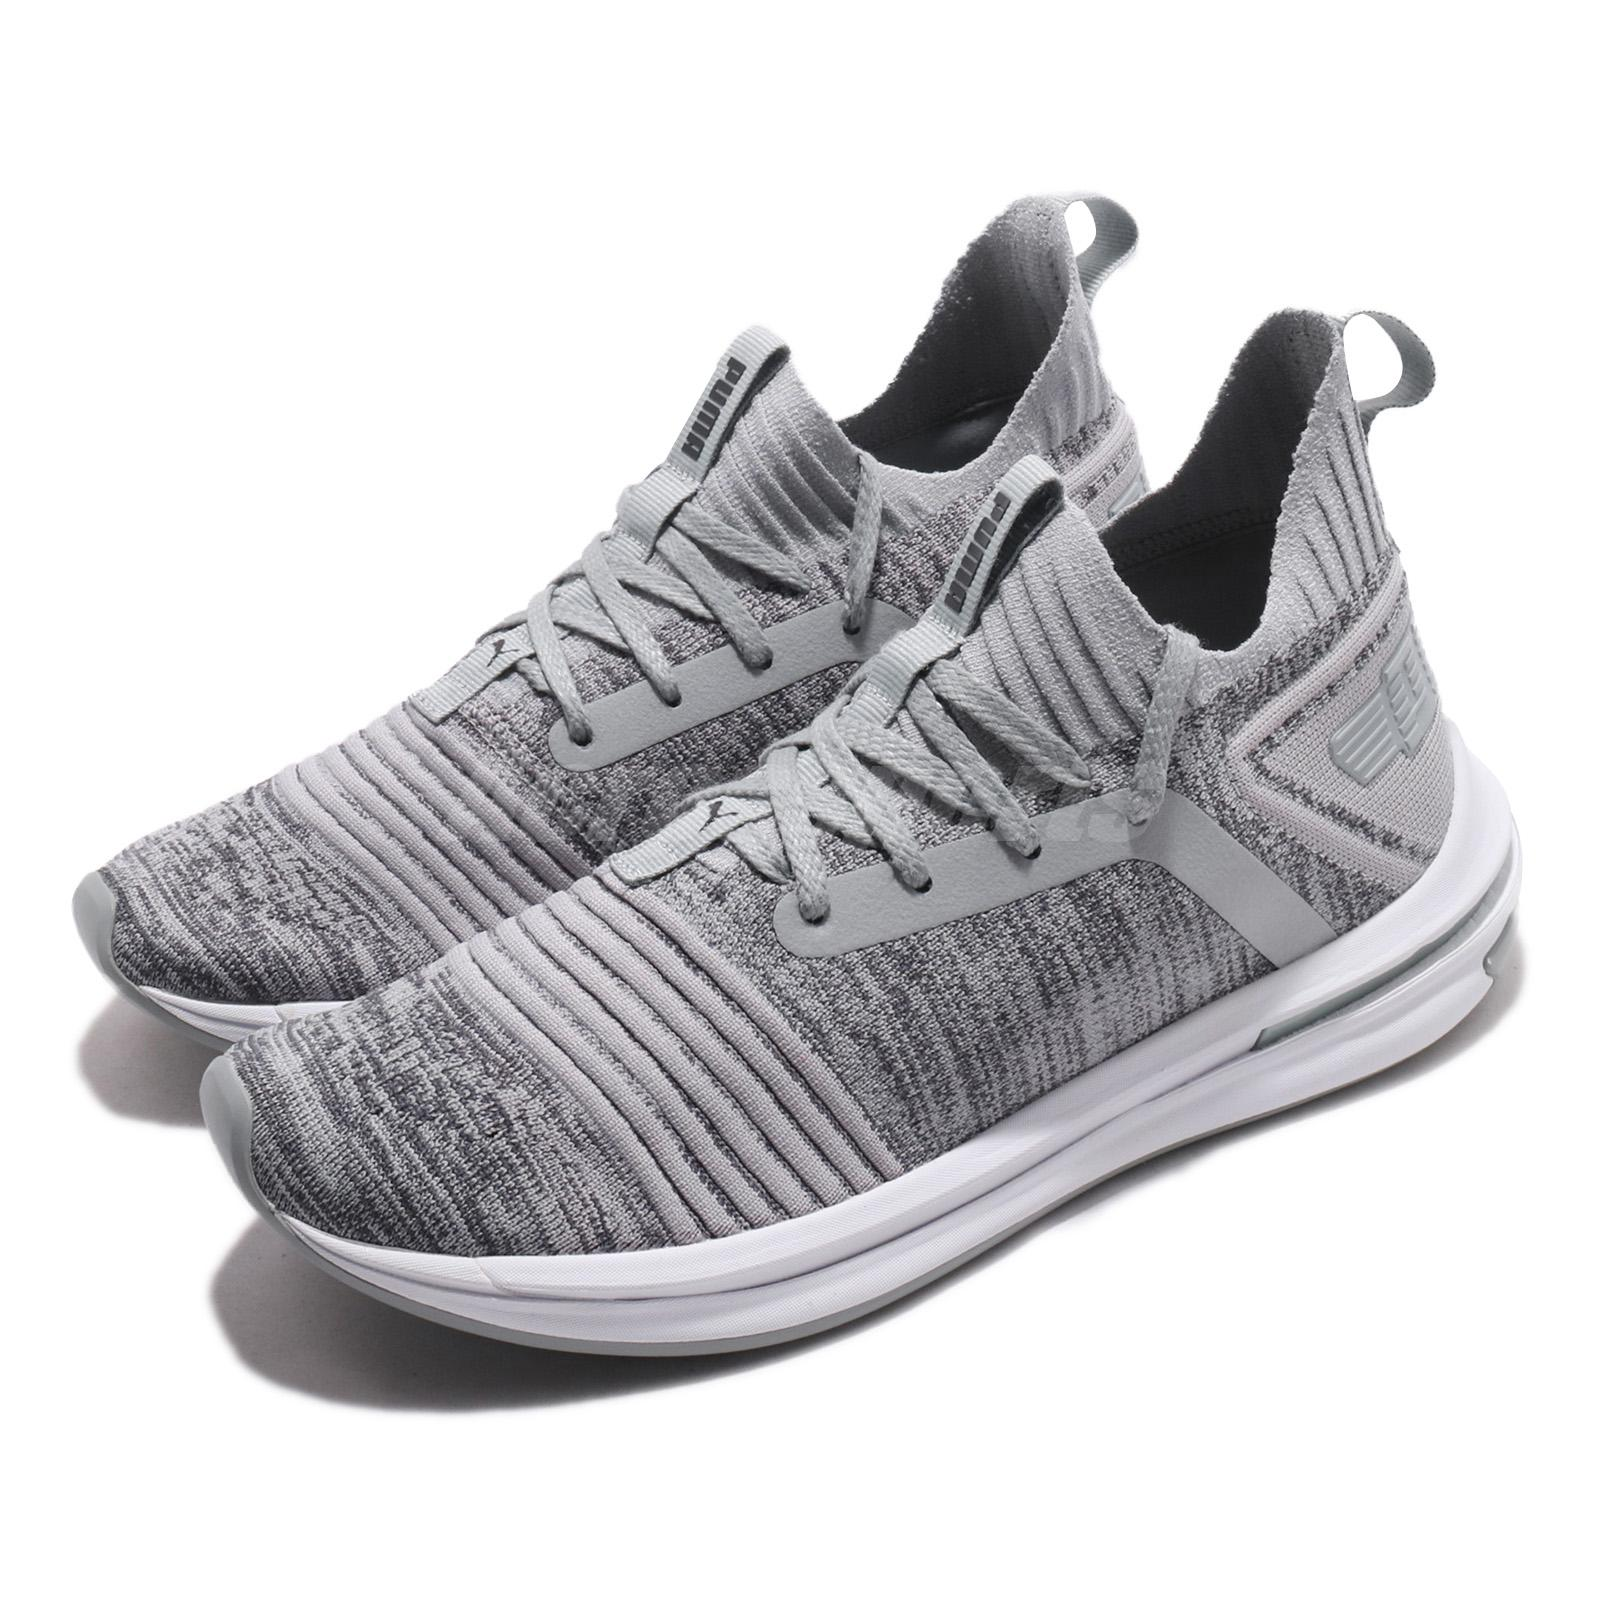 Details about Puma Ignite Limitless SR Evoknit Quarry Grey White Men  Running Shoes 190484-04 e58f372f4